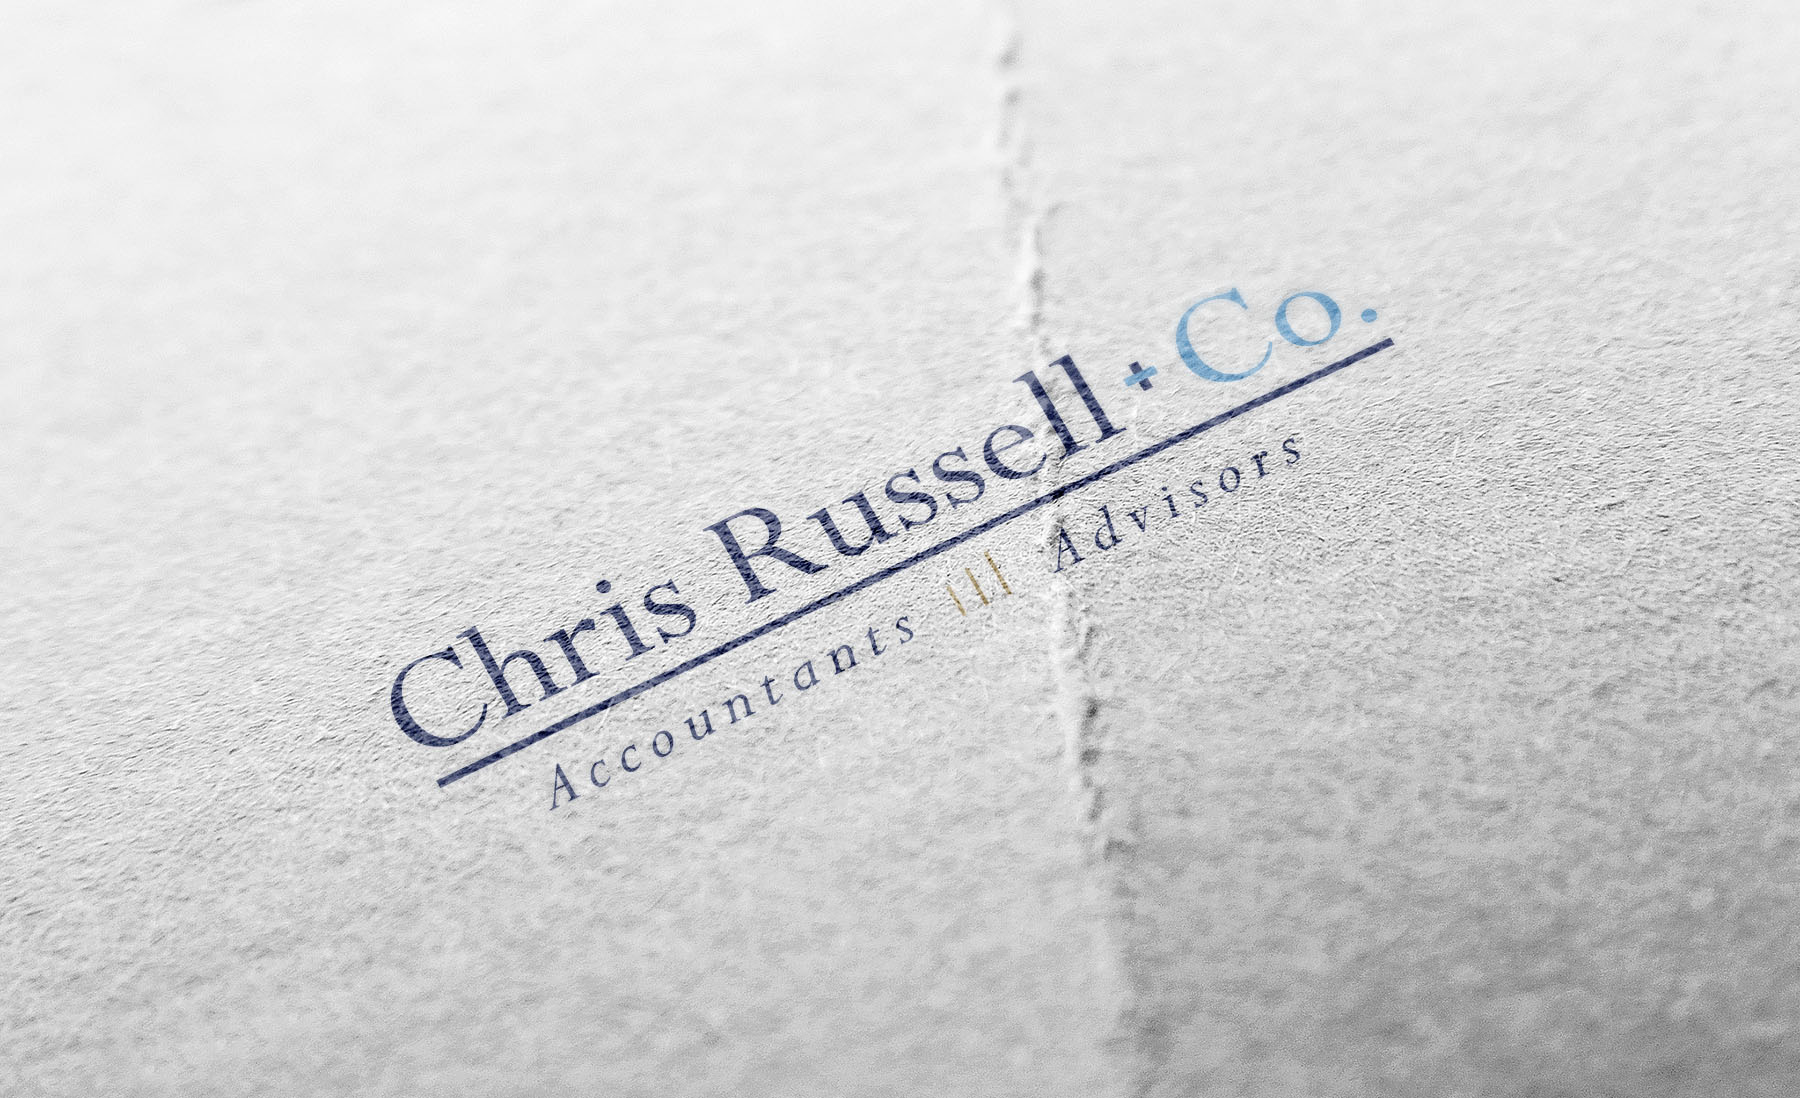 Chris Russell + Co. Logo Mockup on paper by digital marketing agency Beson4 in Jacksonville, Florida